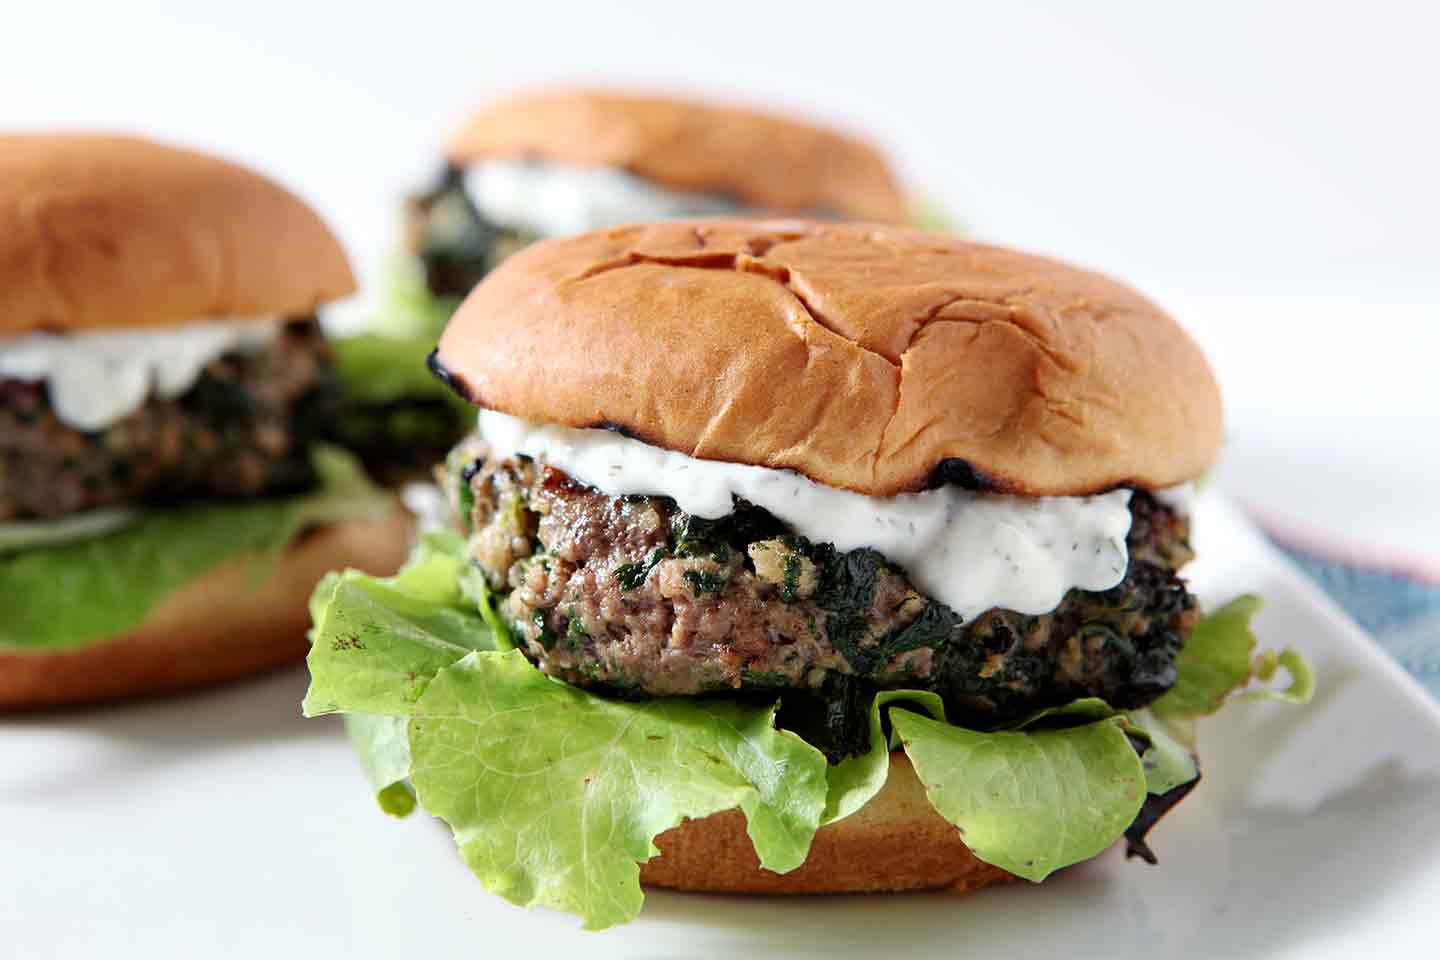 Three Spinach and Feta Burgers sit on a white platter, ready for consuming